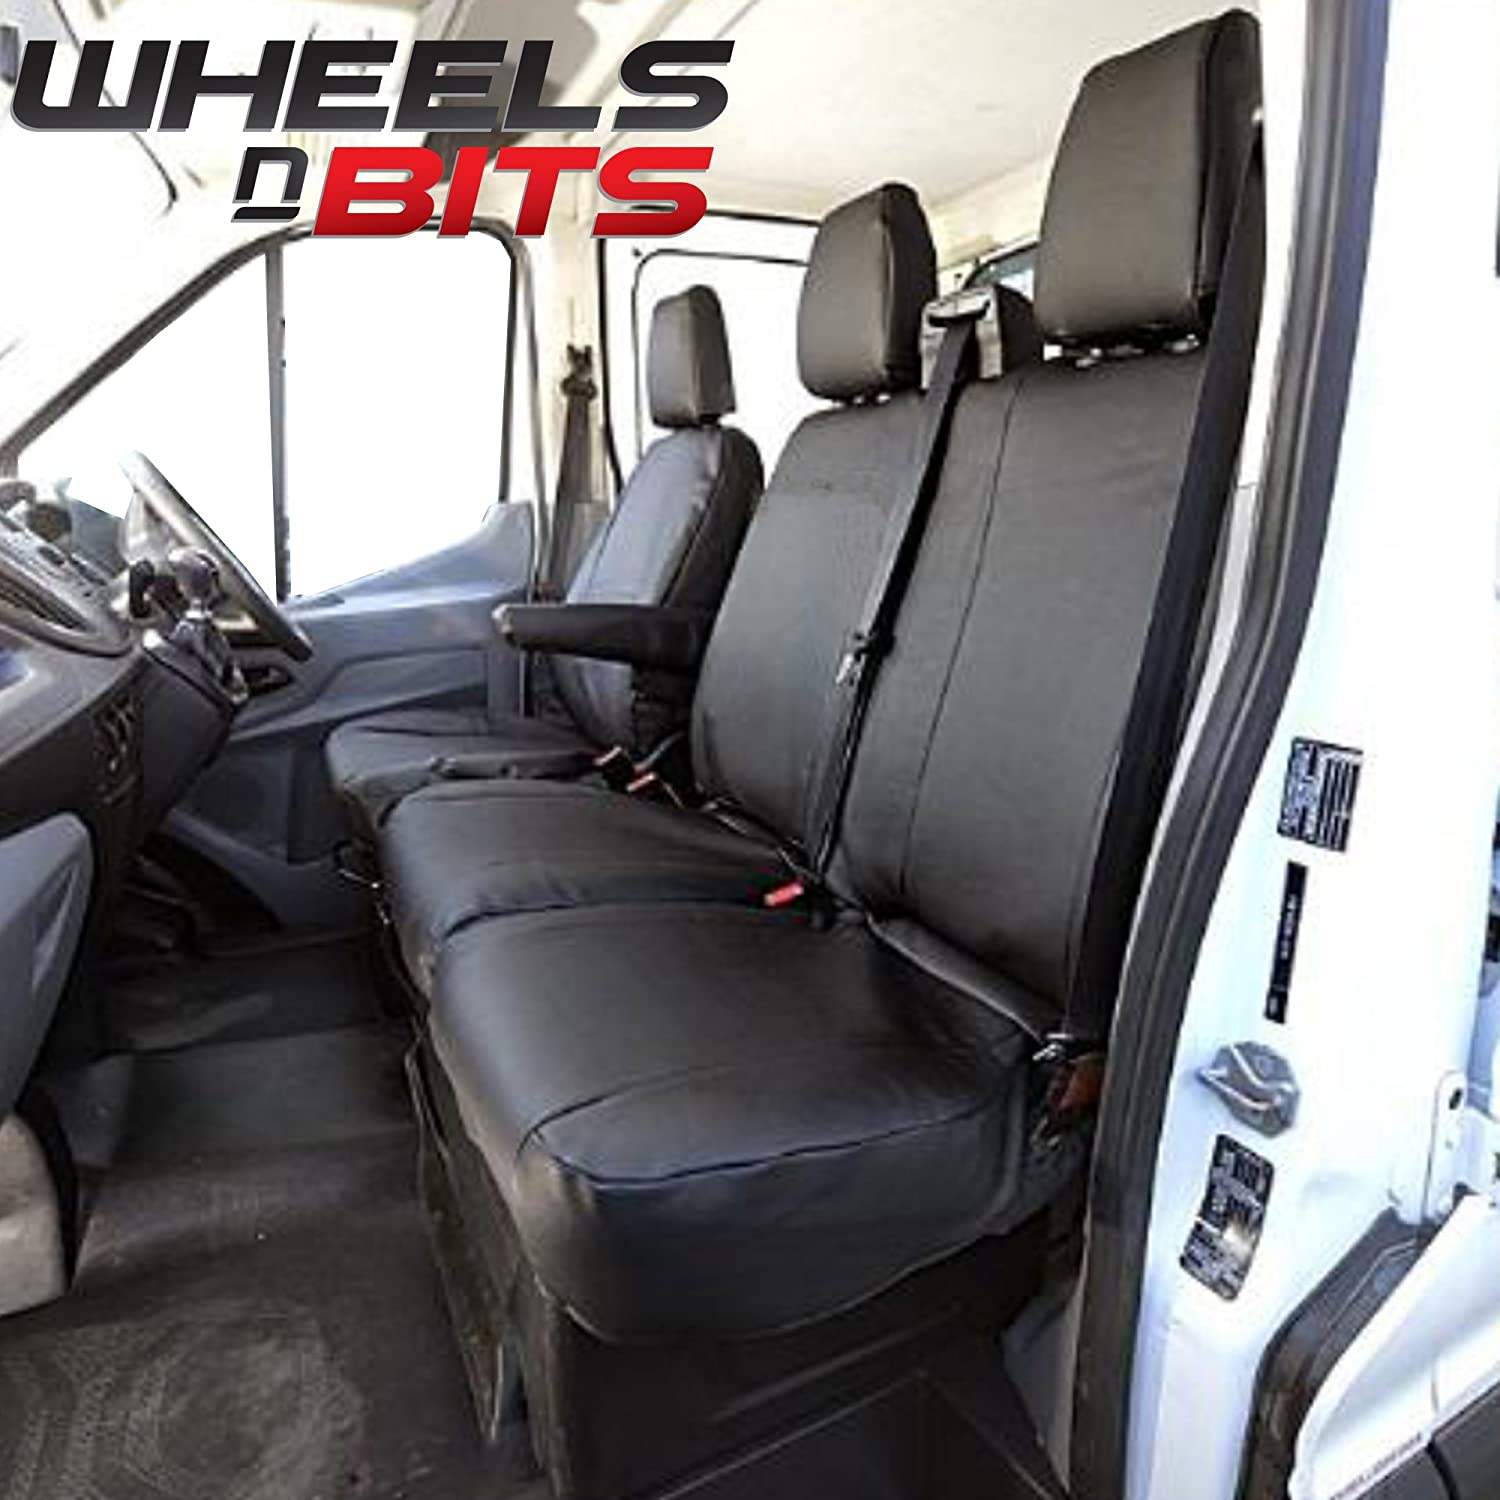 Wheels N Bits 100% Fit Tailored Custom fitment Heavy duty Faux PVC Leather Van Seat Cover WaterProof Proofed Oil Dirt Grease Resistant Perfect for Builder Plasters Farming